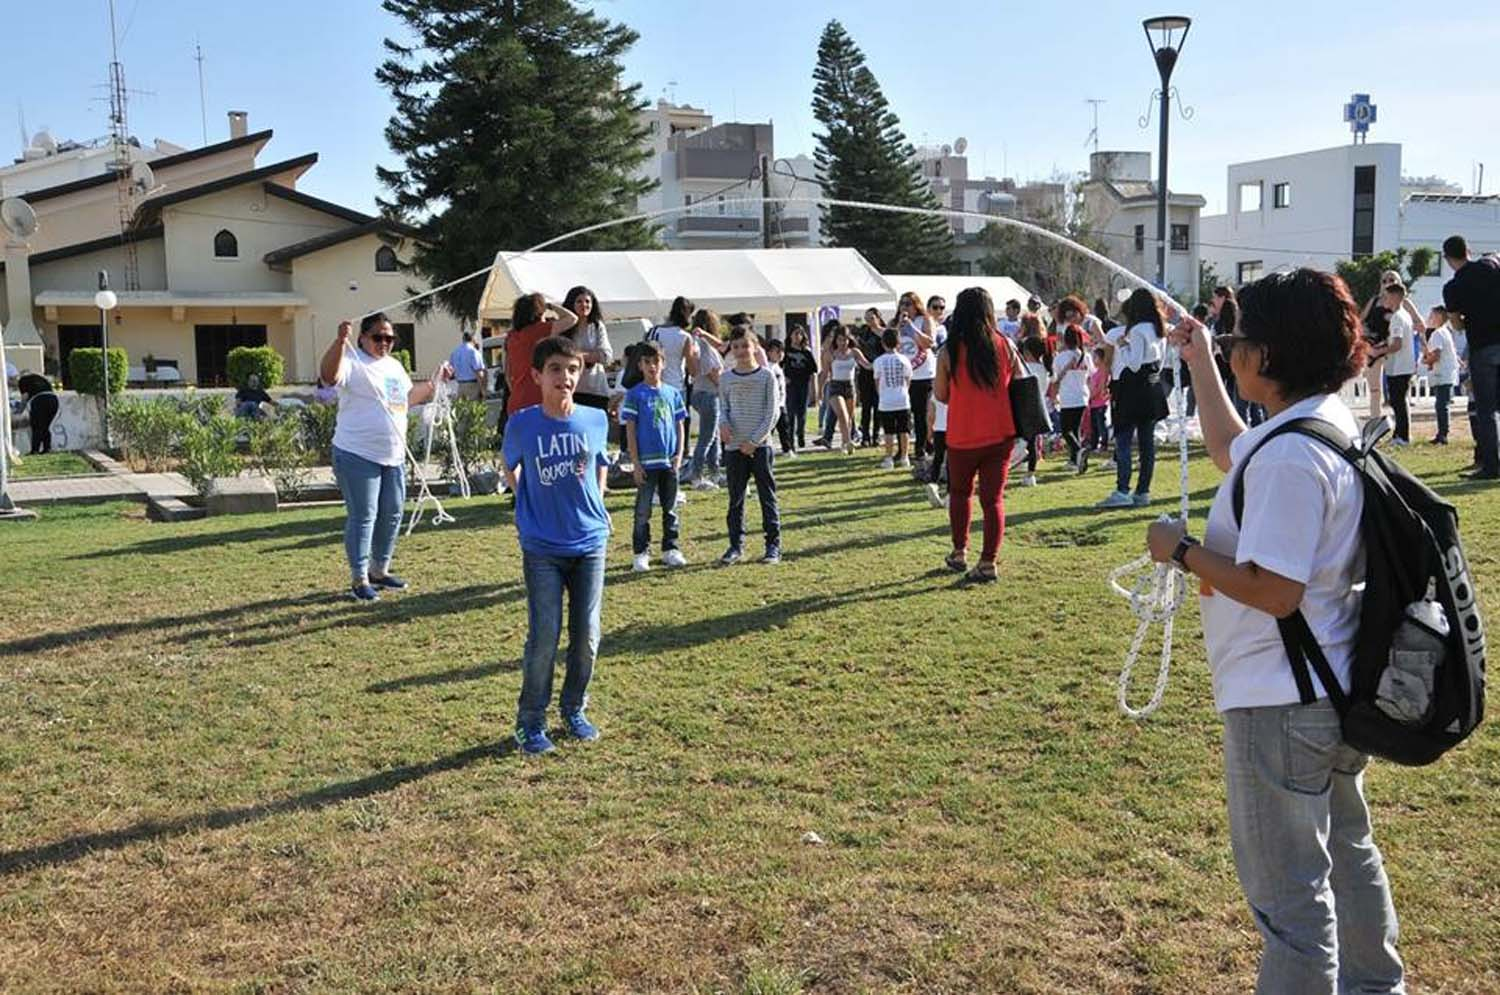 Traditional_Games_Festival_Engomi_Municipality_15April2018_6